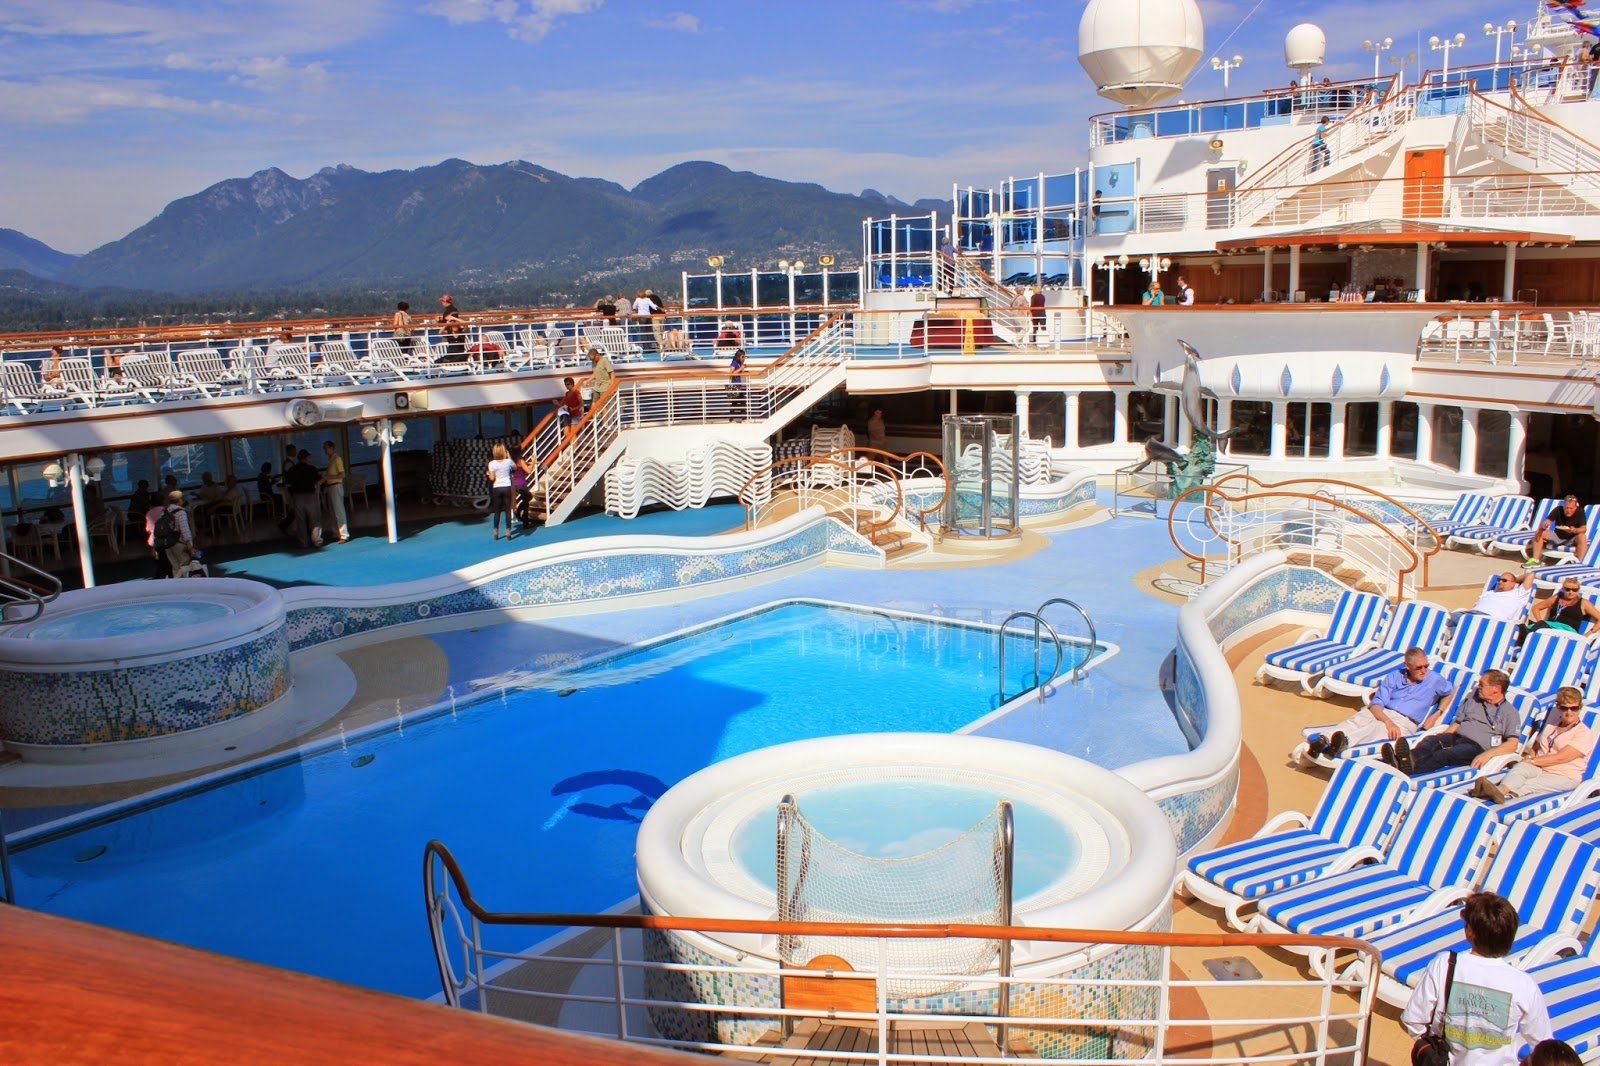 Cruising All Over The World Cruise Ships For All Age Groups